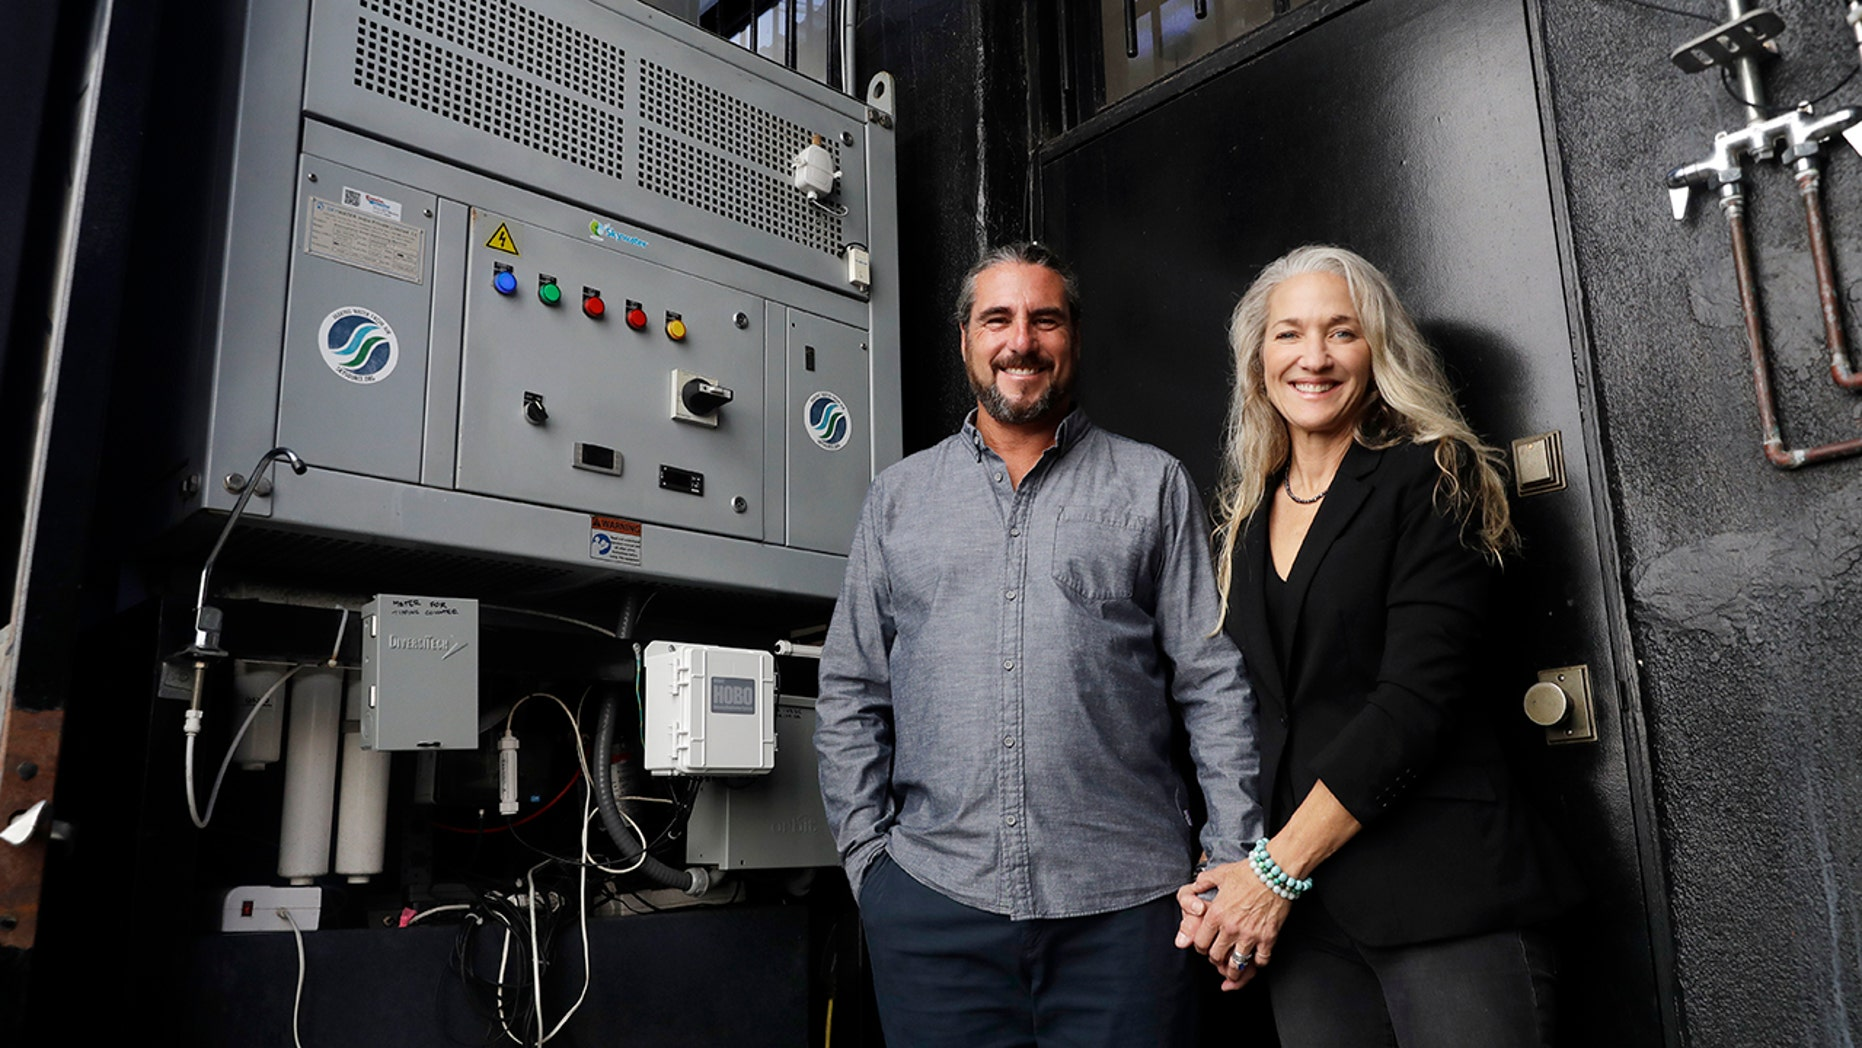 The Skysource/Skywater Alliance co-founders David Hertz, left, and his wife Laura Doss-Hertz pose for a portrait next to the Skywater 300 Wednesday in Los Angeles.